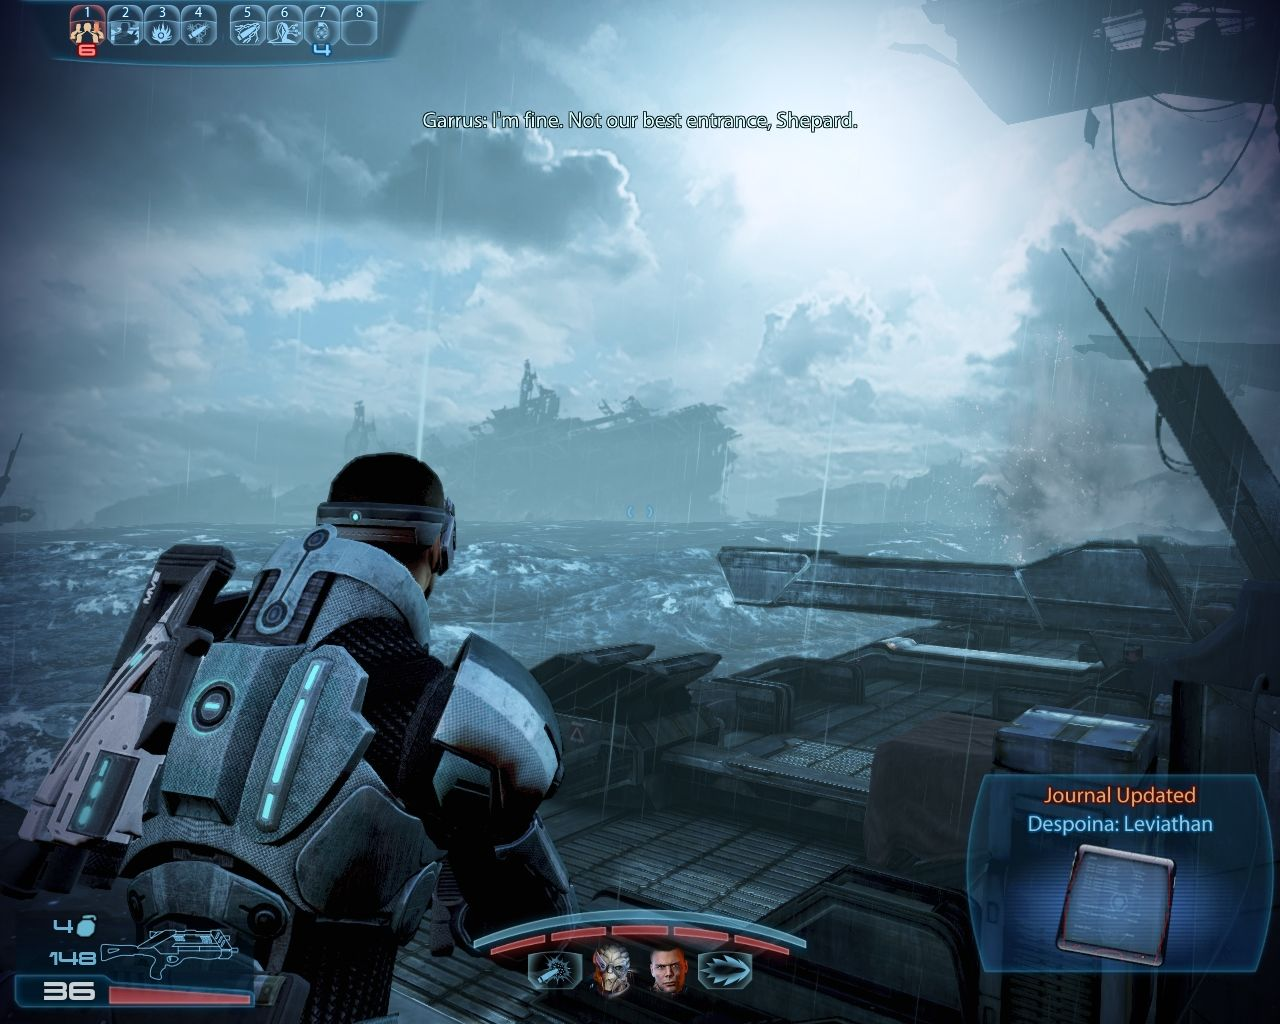 Mass Effect 3: Leviathan Windows Fast forward .. we arrive at our final destination. It looks like a Bermuda Triangle kind of place. It's littered with shipwrecks, most of them ancient.